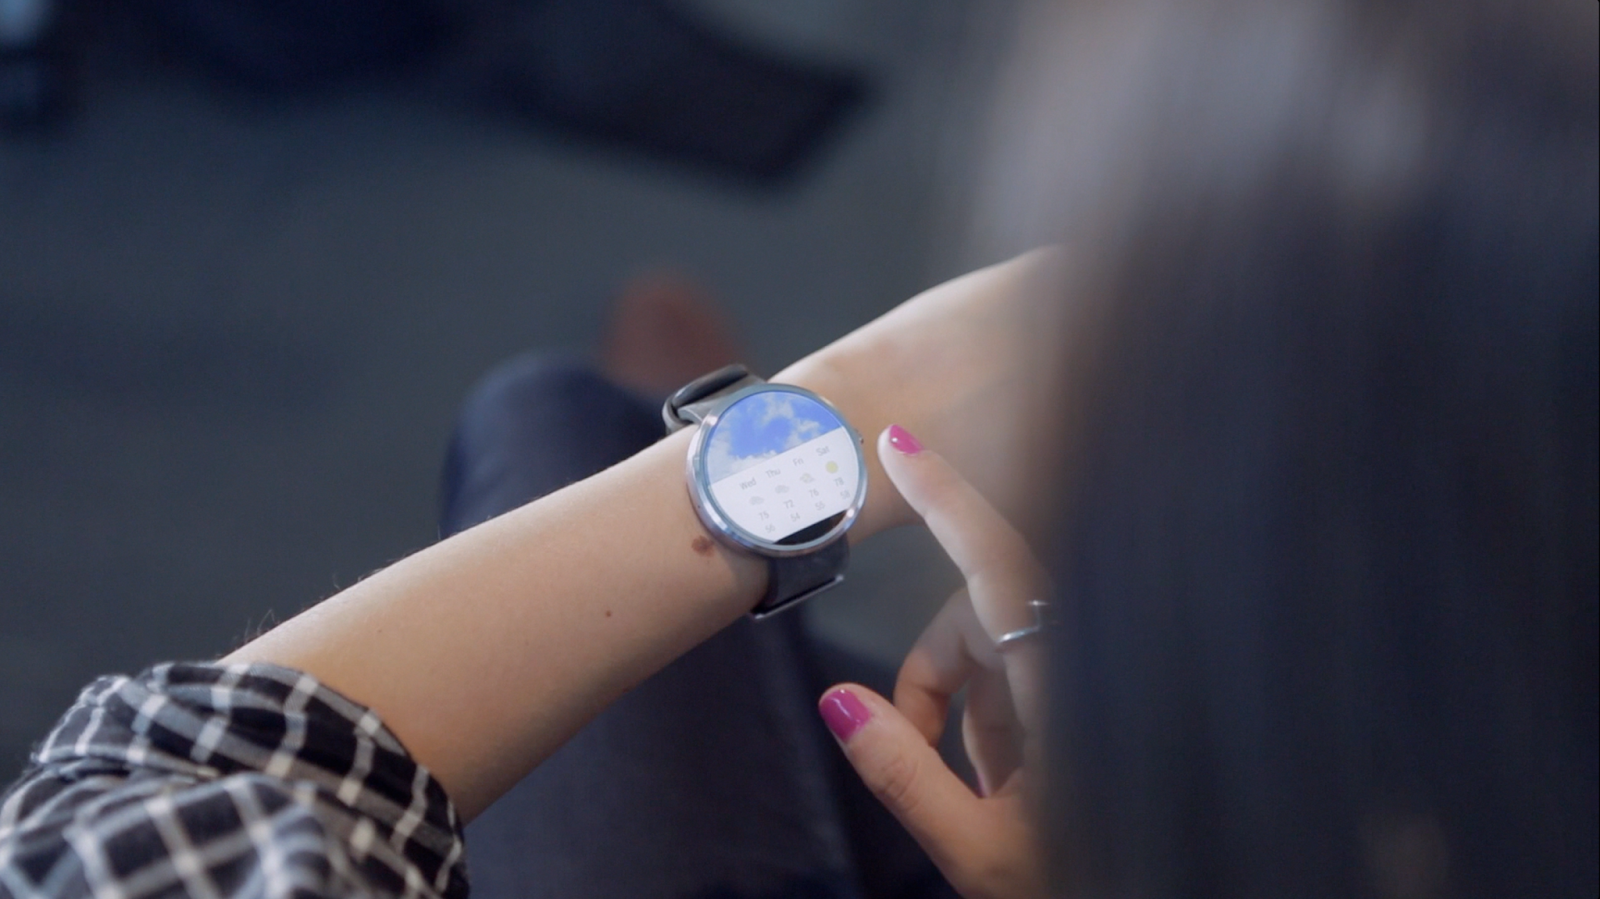 VIDEO: Sneak Peek at Moto 360 in Action